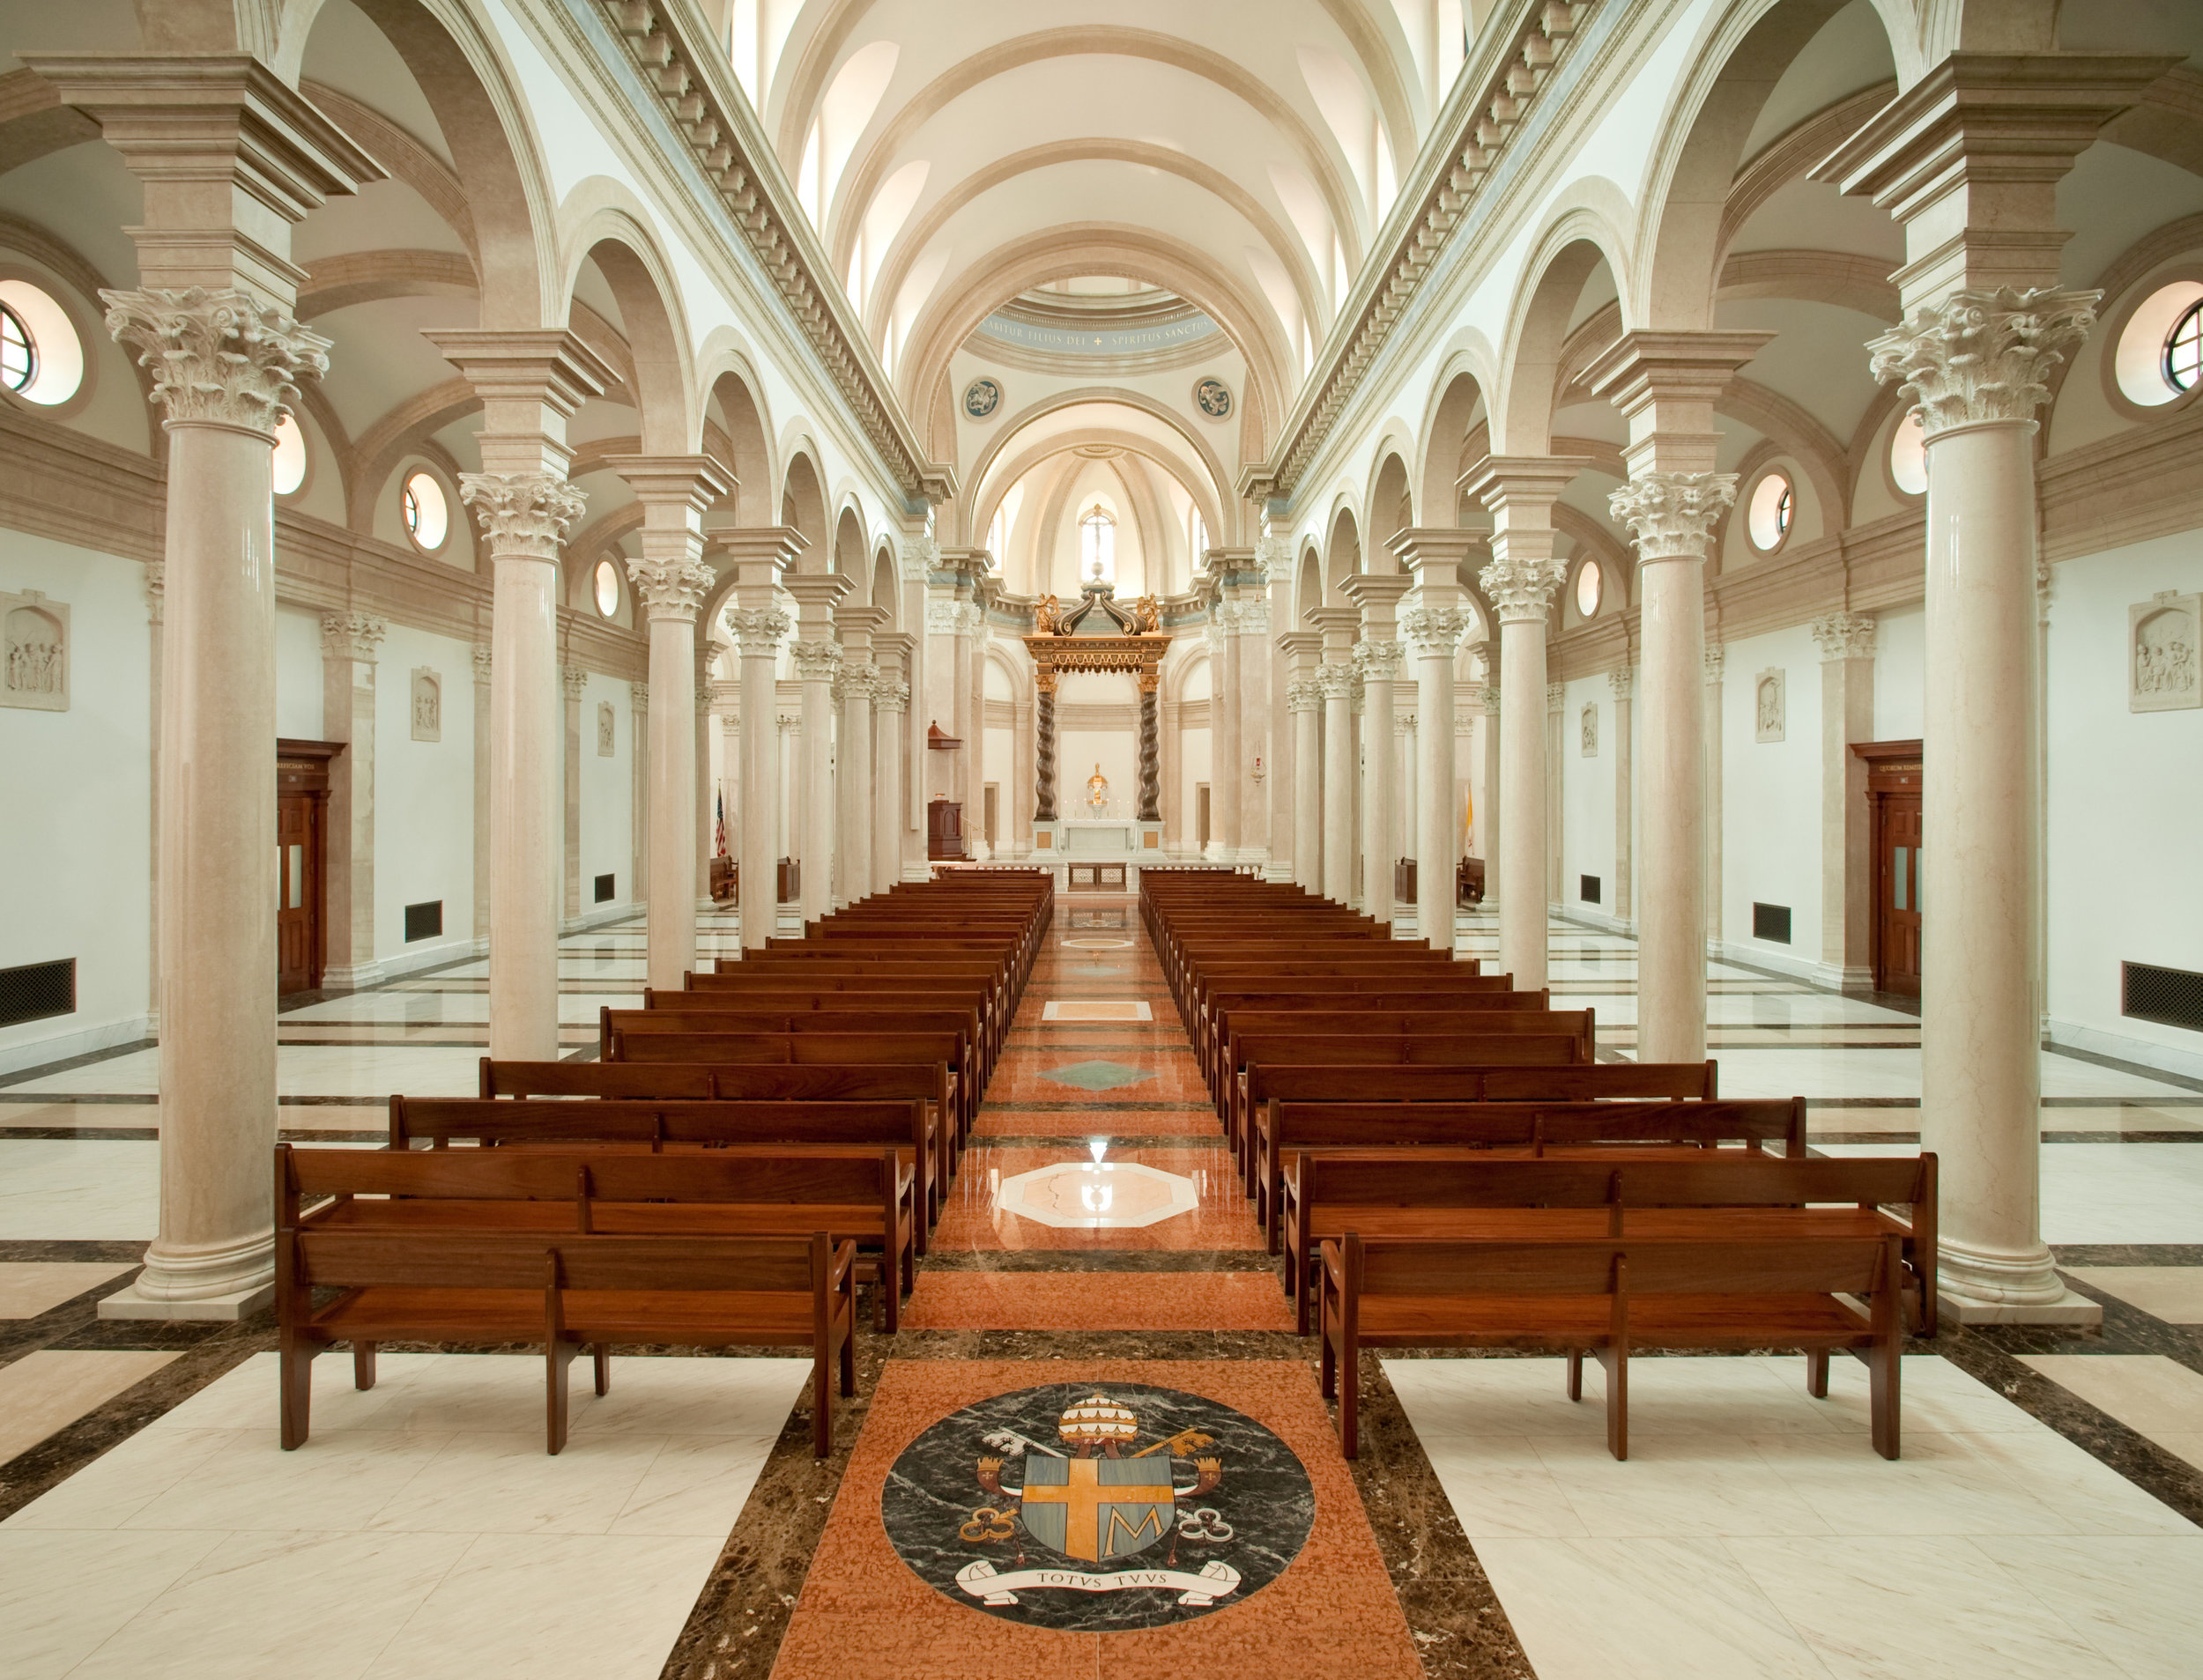 Interior of the Our Lady of the Most Holy Trinity Chapel | Photo courtesy of Thomas Aquinas College.